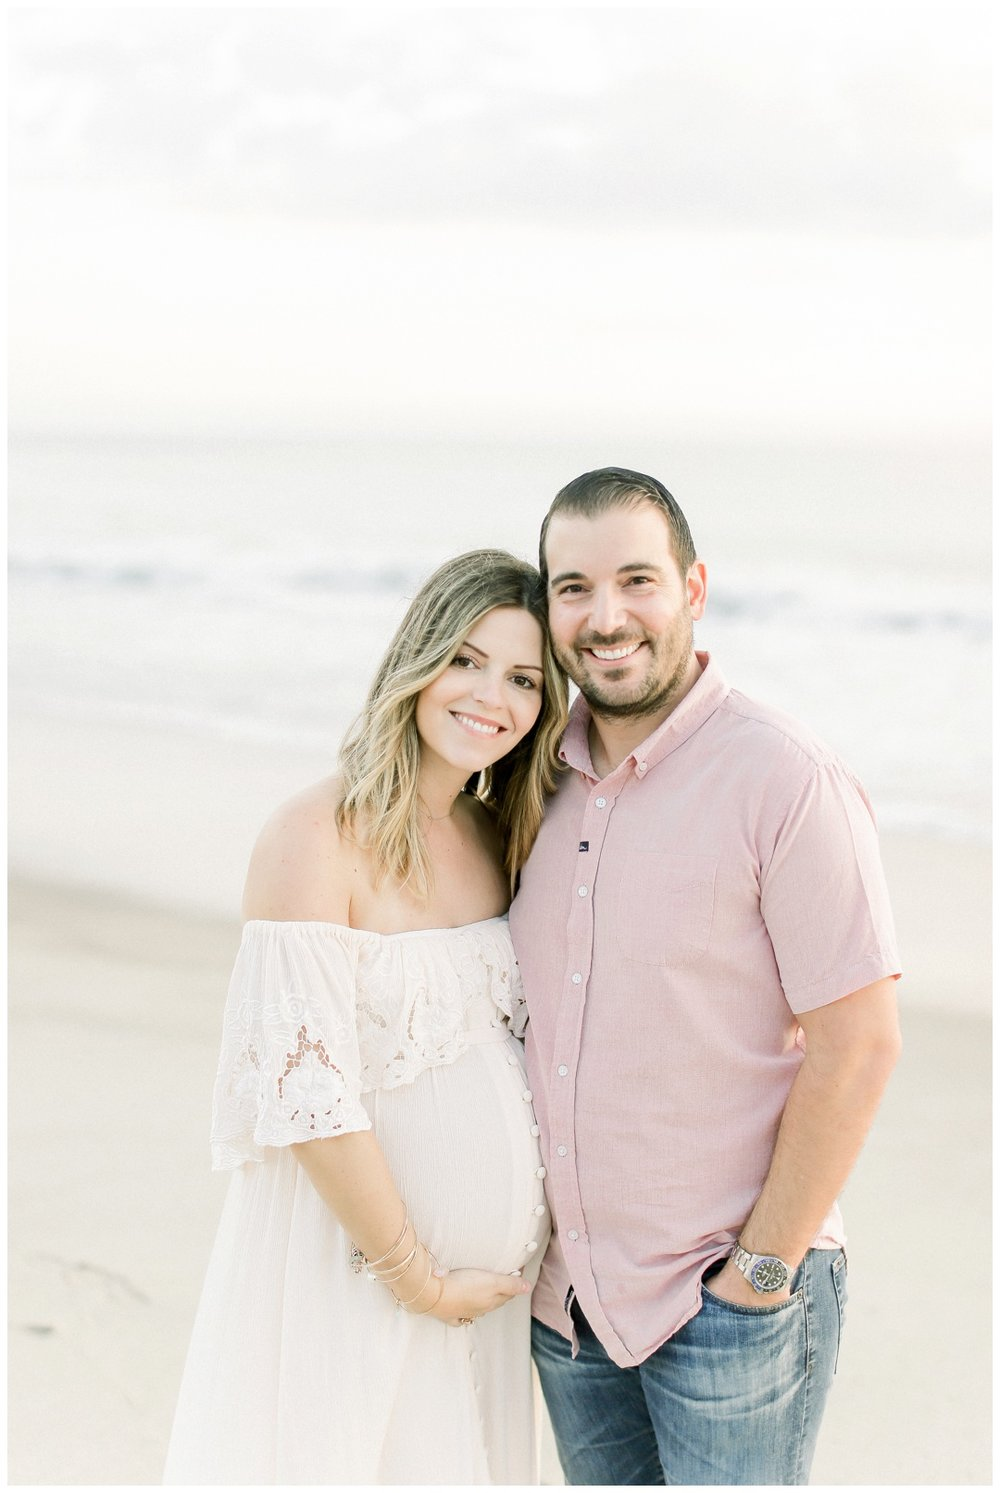 Newport_Beach_Maternity_Photographer_Newport_Beach_Newborn_Photographer_Orange_County_Newborn_Photographer_Cori_Kleckner_Photography_Orange_County_San_Clemente_Maternity_Session_Photography__2254.jpg